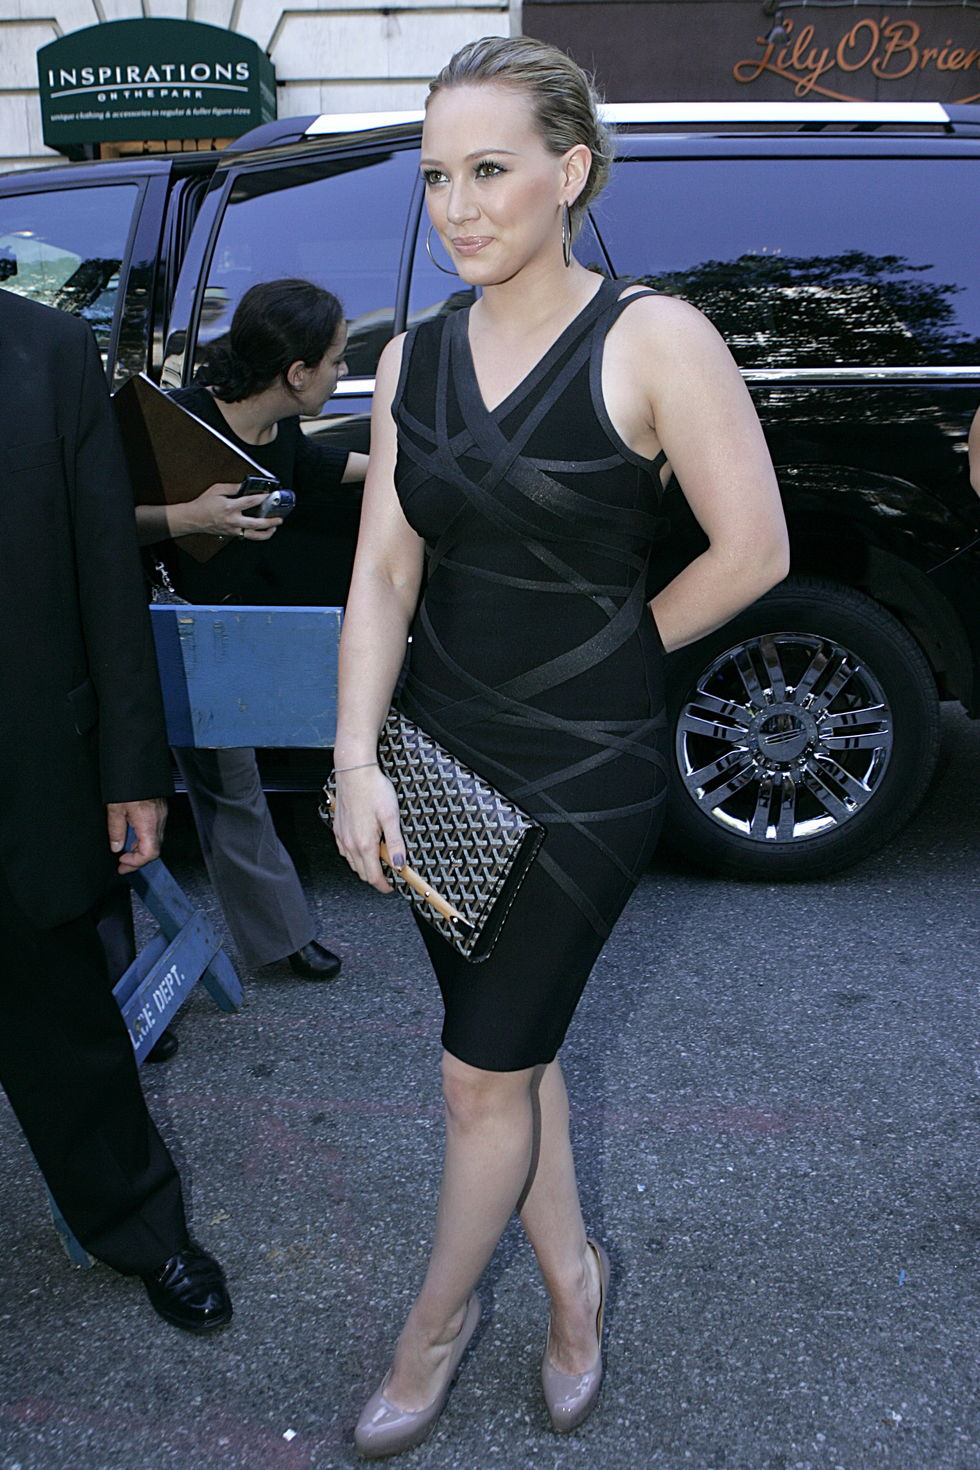 hilary-duff-at-fashion-week-spring-2010-in-new-york-01